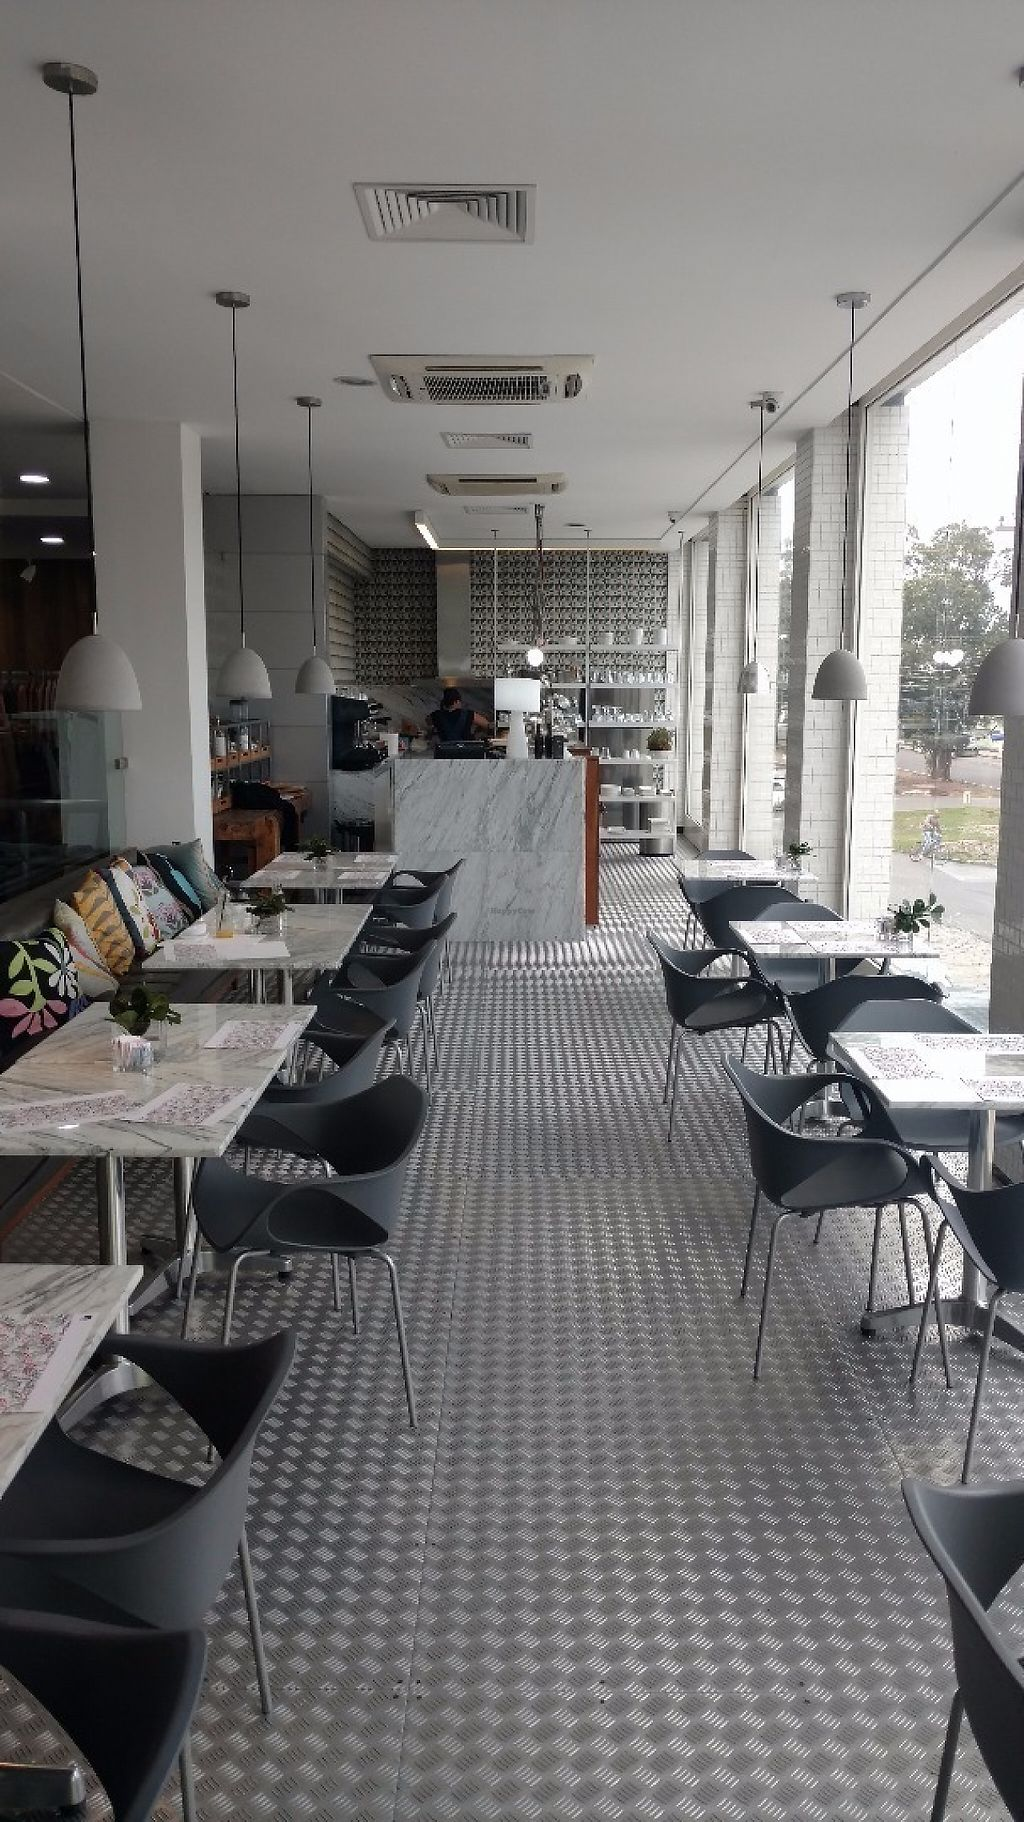 """Photo of Cafe da Krause  by <a href=""""/members/profile/augustokrause"""">augustokrause</a> <br/>Café da Krause <br/> May 22, 2017  - <a href='/contact/abuse/image/92552/261336'>Report</a>"""